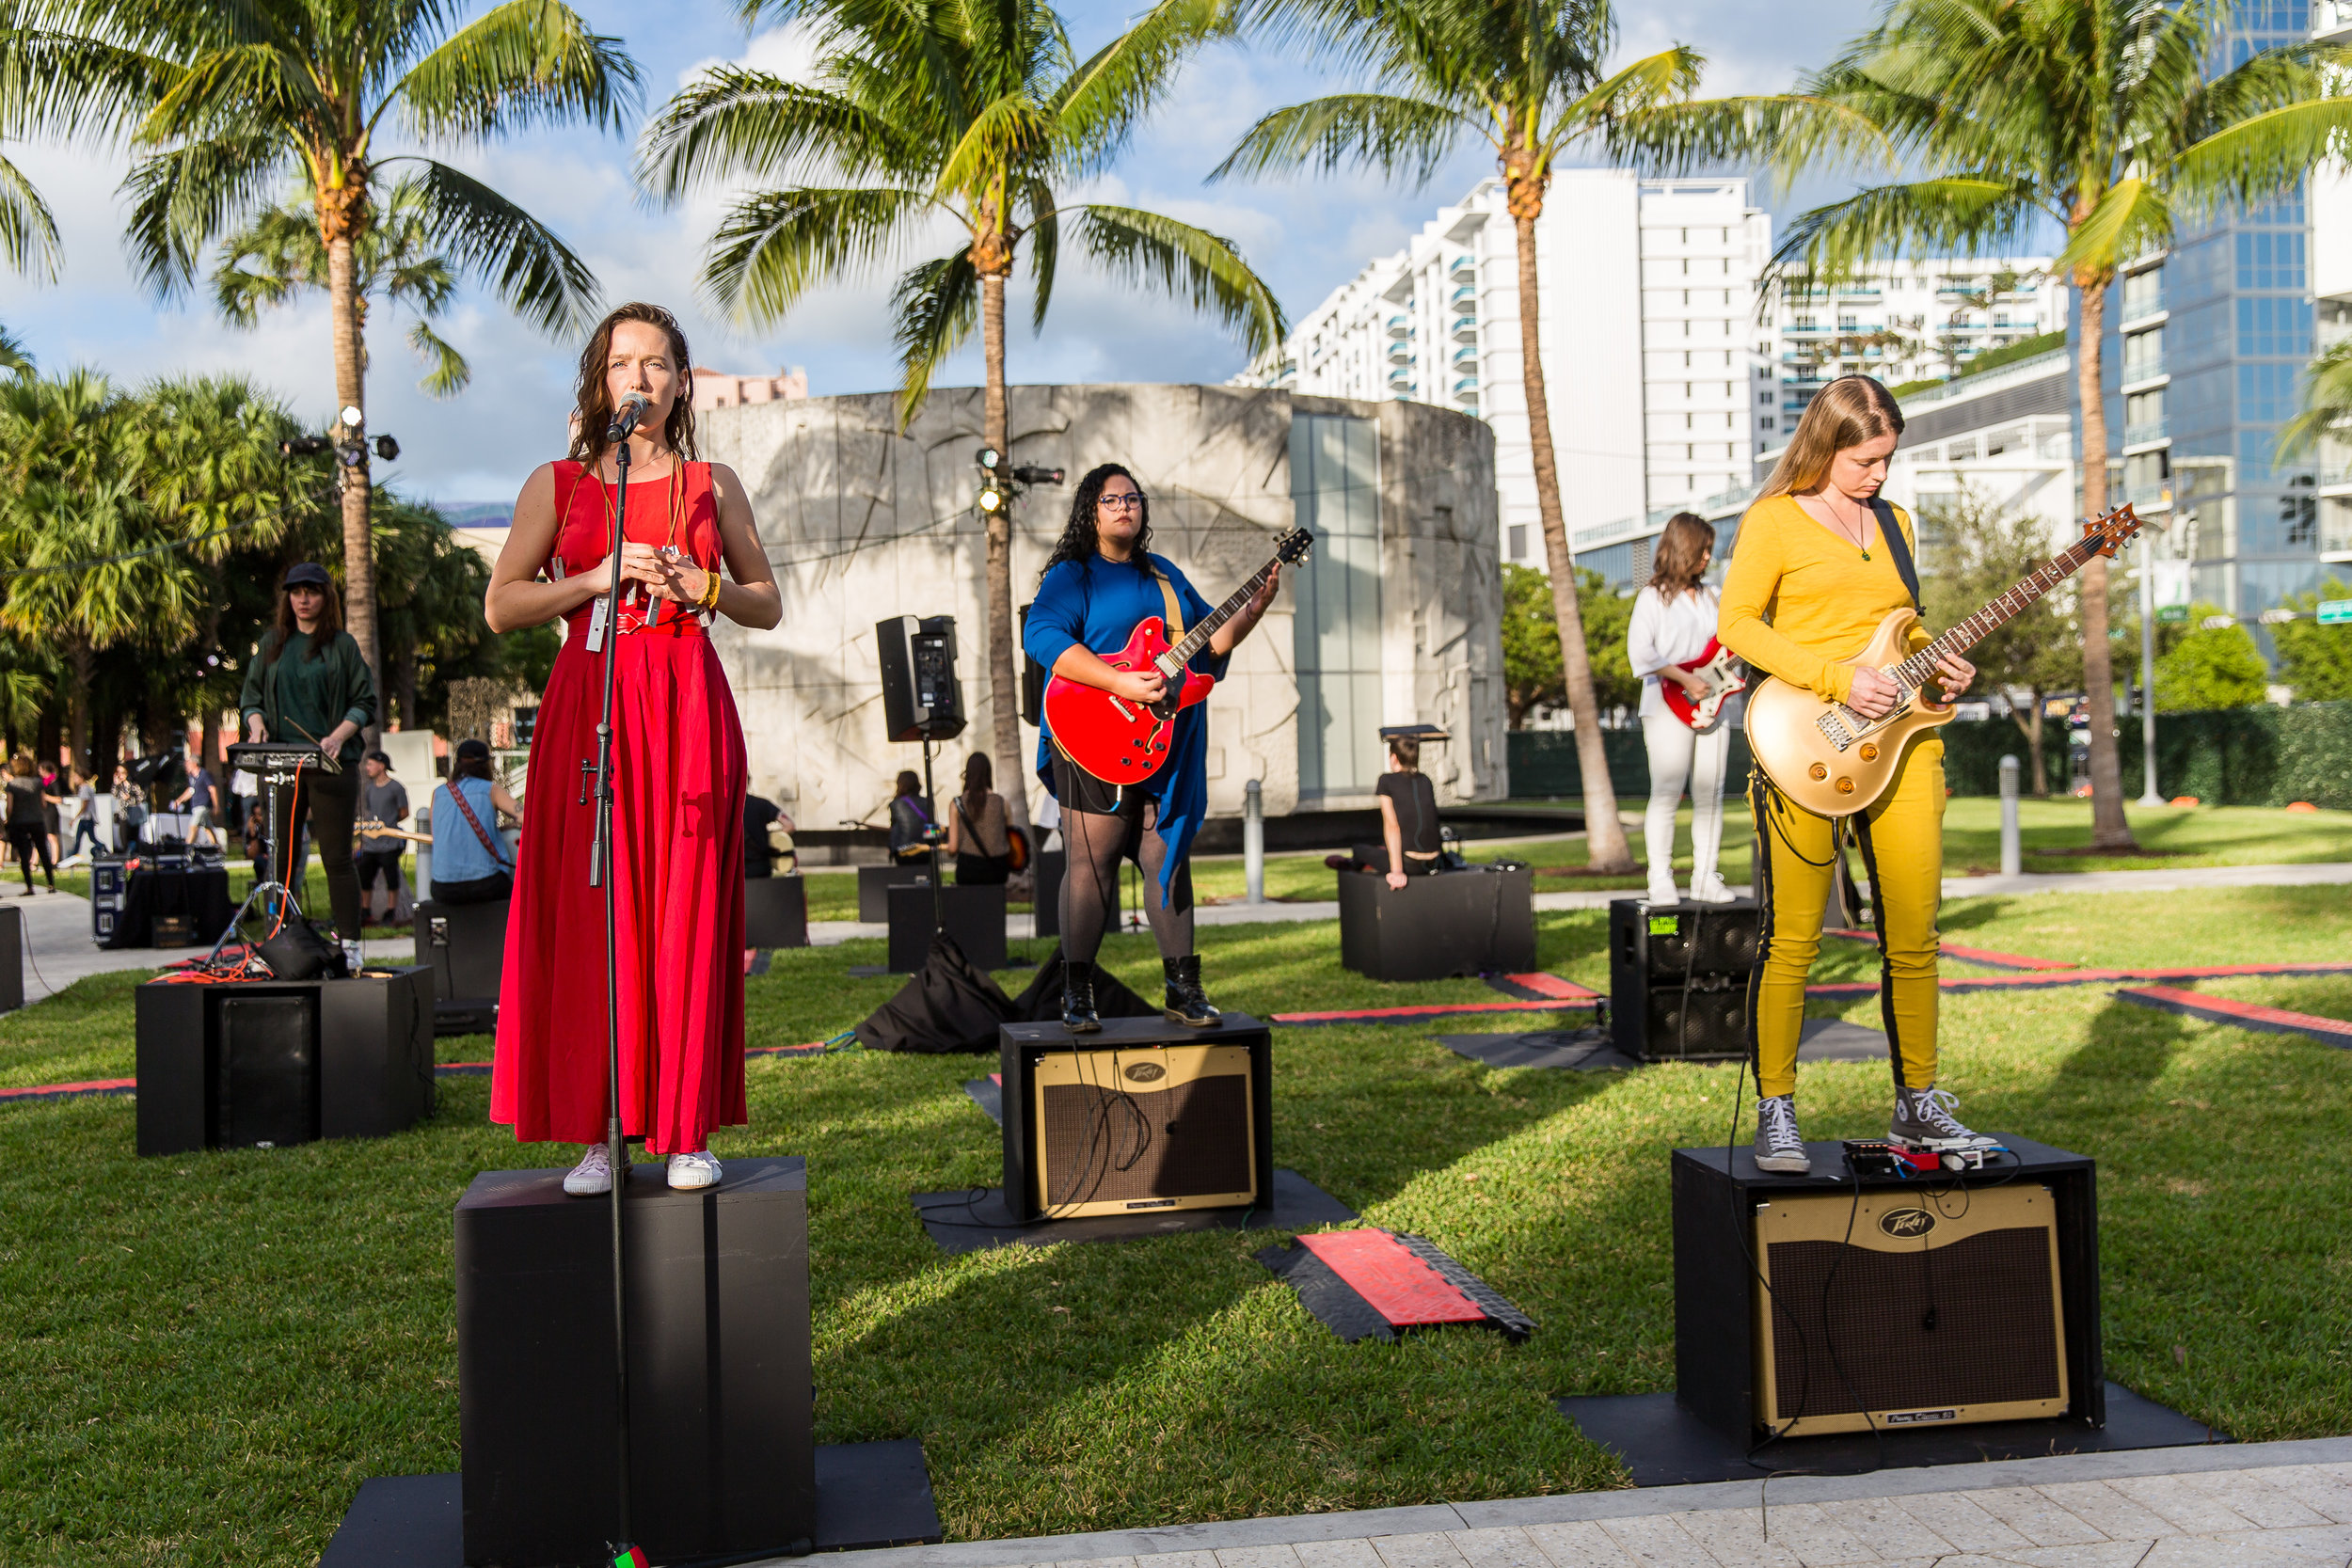 Naama Tsabar.  Composition 18 , 2016 Performance at Collins Park, Miami Beach, as part of Art Basel Miami Beach Public, curated by Nicholas Baume, Miami Beach Image courtesy the artist, Art Basel, and Spinello Projects